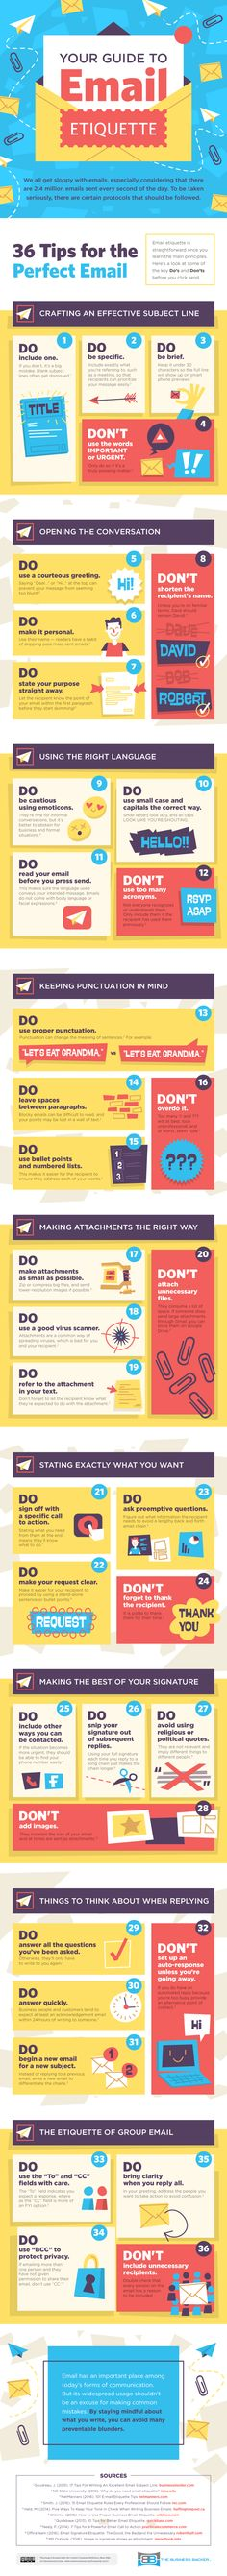 How to write an email that wont be mocked trashed or ignored - Email Marketing - Start your email marketing Now. - How to write an email that won't be mocked trashed or ignored Social Marketing, Marketing Digital, Marketing Website, Marketing En Internet, Email Marketing Strategy, Business Marketing, Inbound Marketing, Online Marketing, Marketing Communications